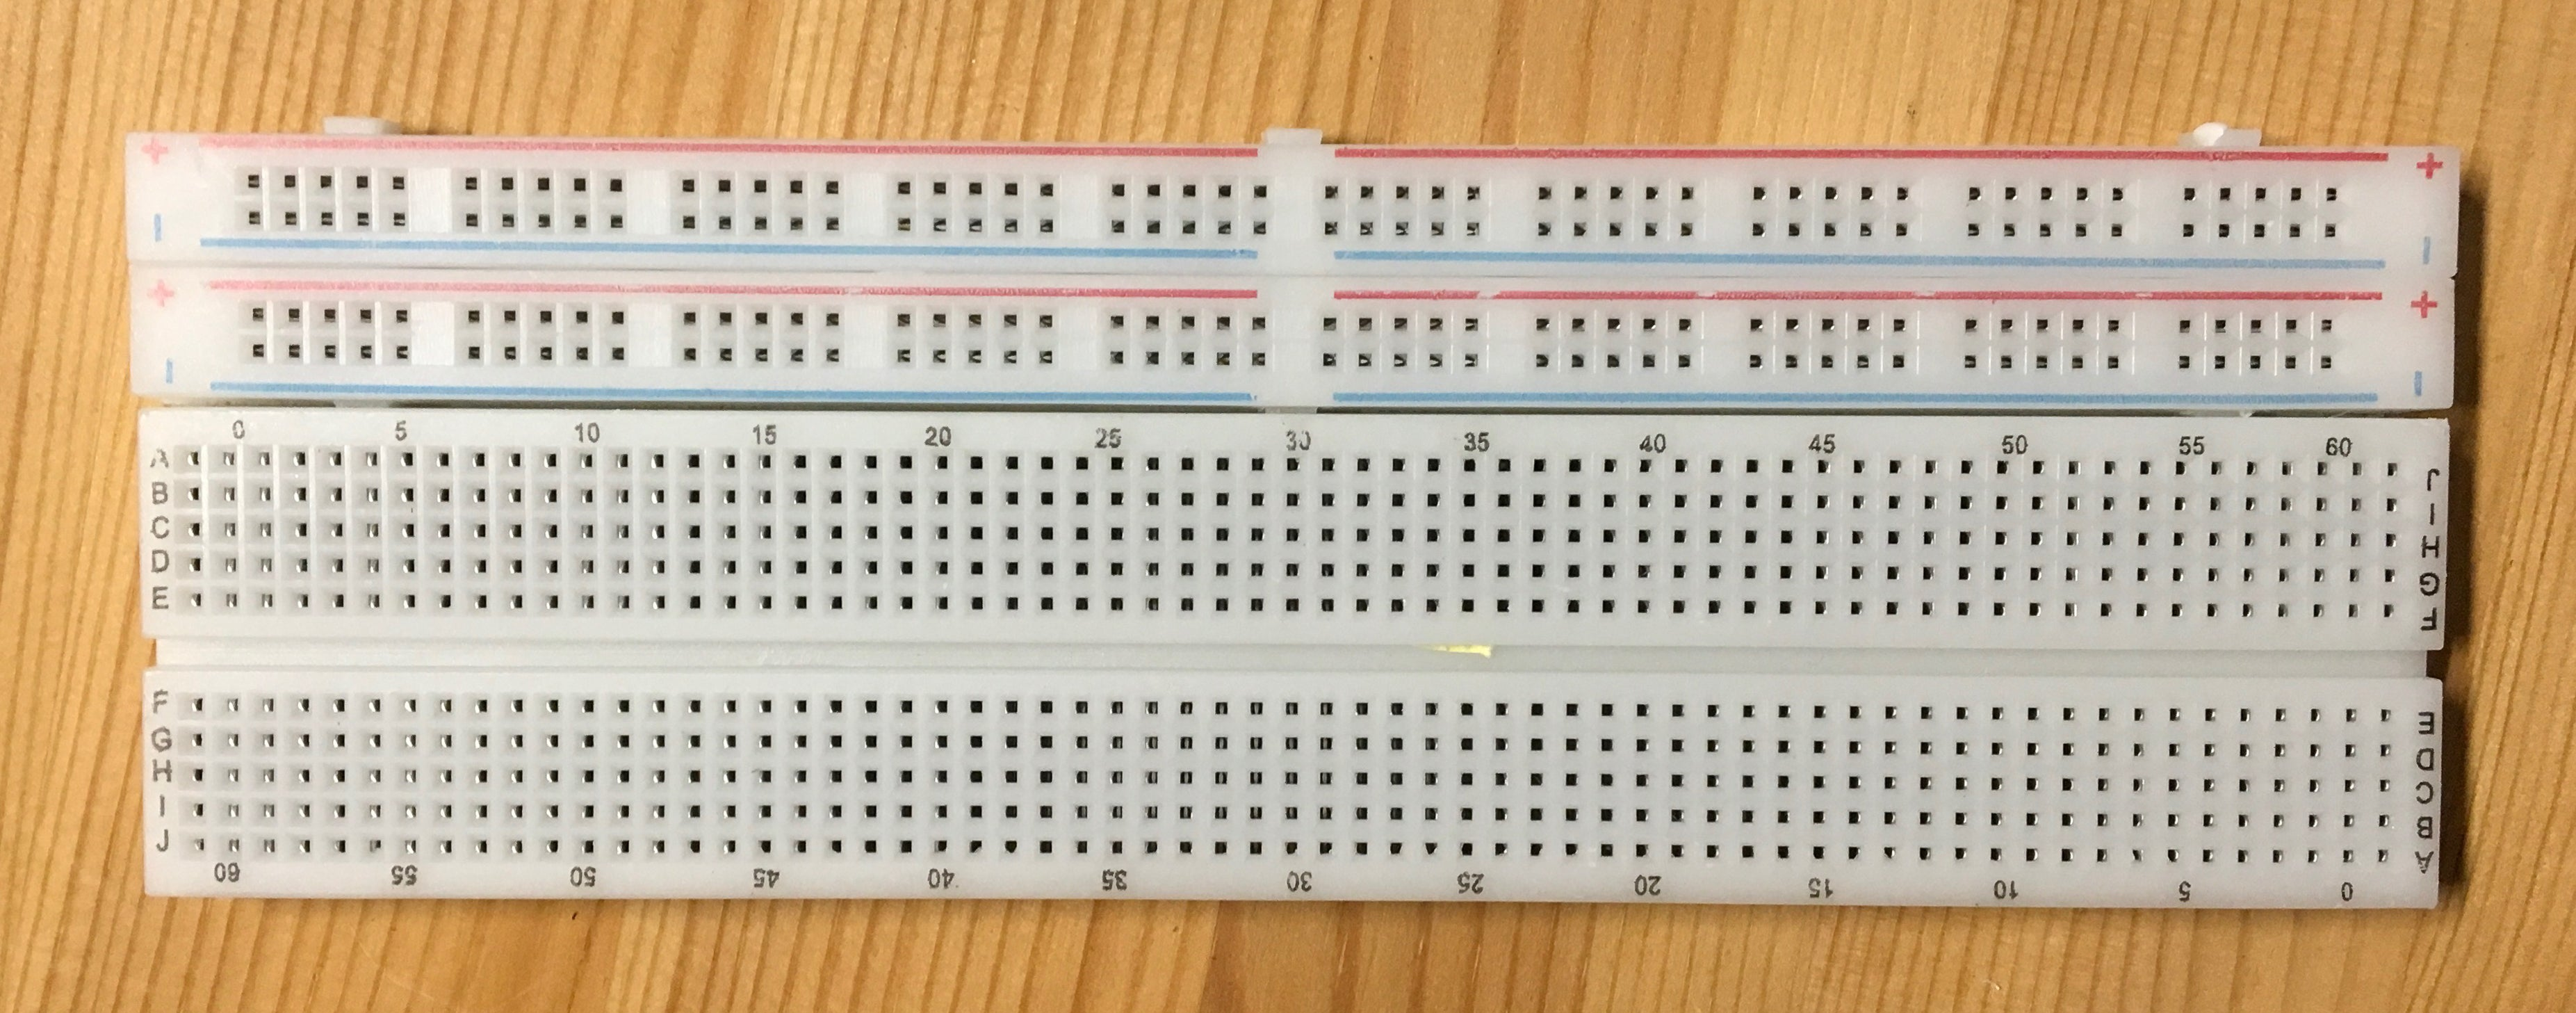 Reconfigurable / Extendable Solderless Breadboard, 830 Tie Points - Server On The Move